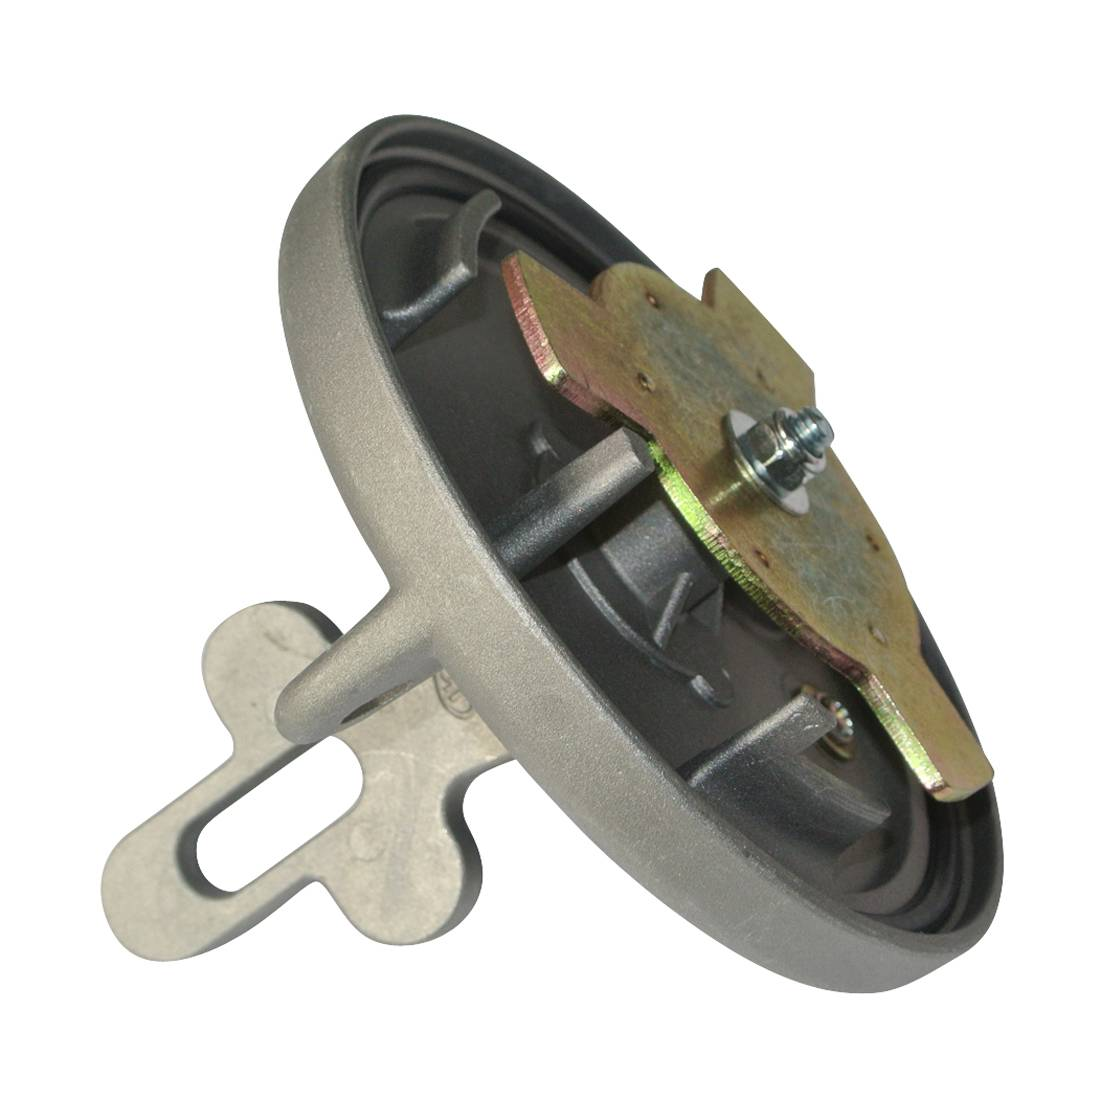 Locking Fuel Cap For CATERPILLAR <font><b>CAT</b></font> Dozer Loader <font><b>Excavator</b></font> 515 525B <font><b>320C</b></font> 7X7700 image